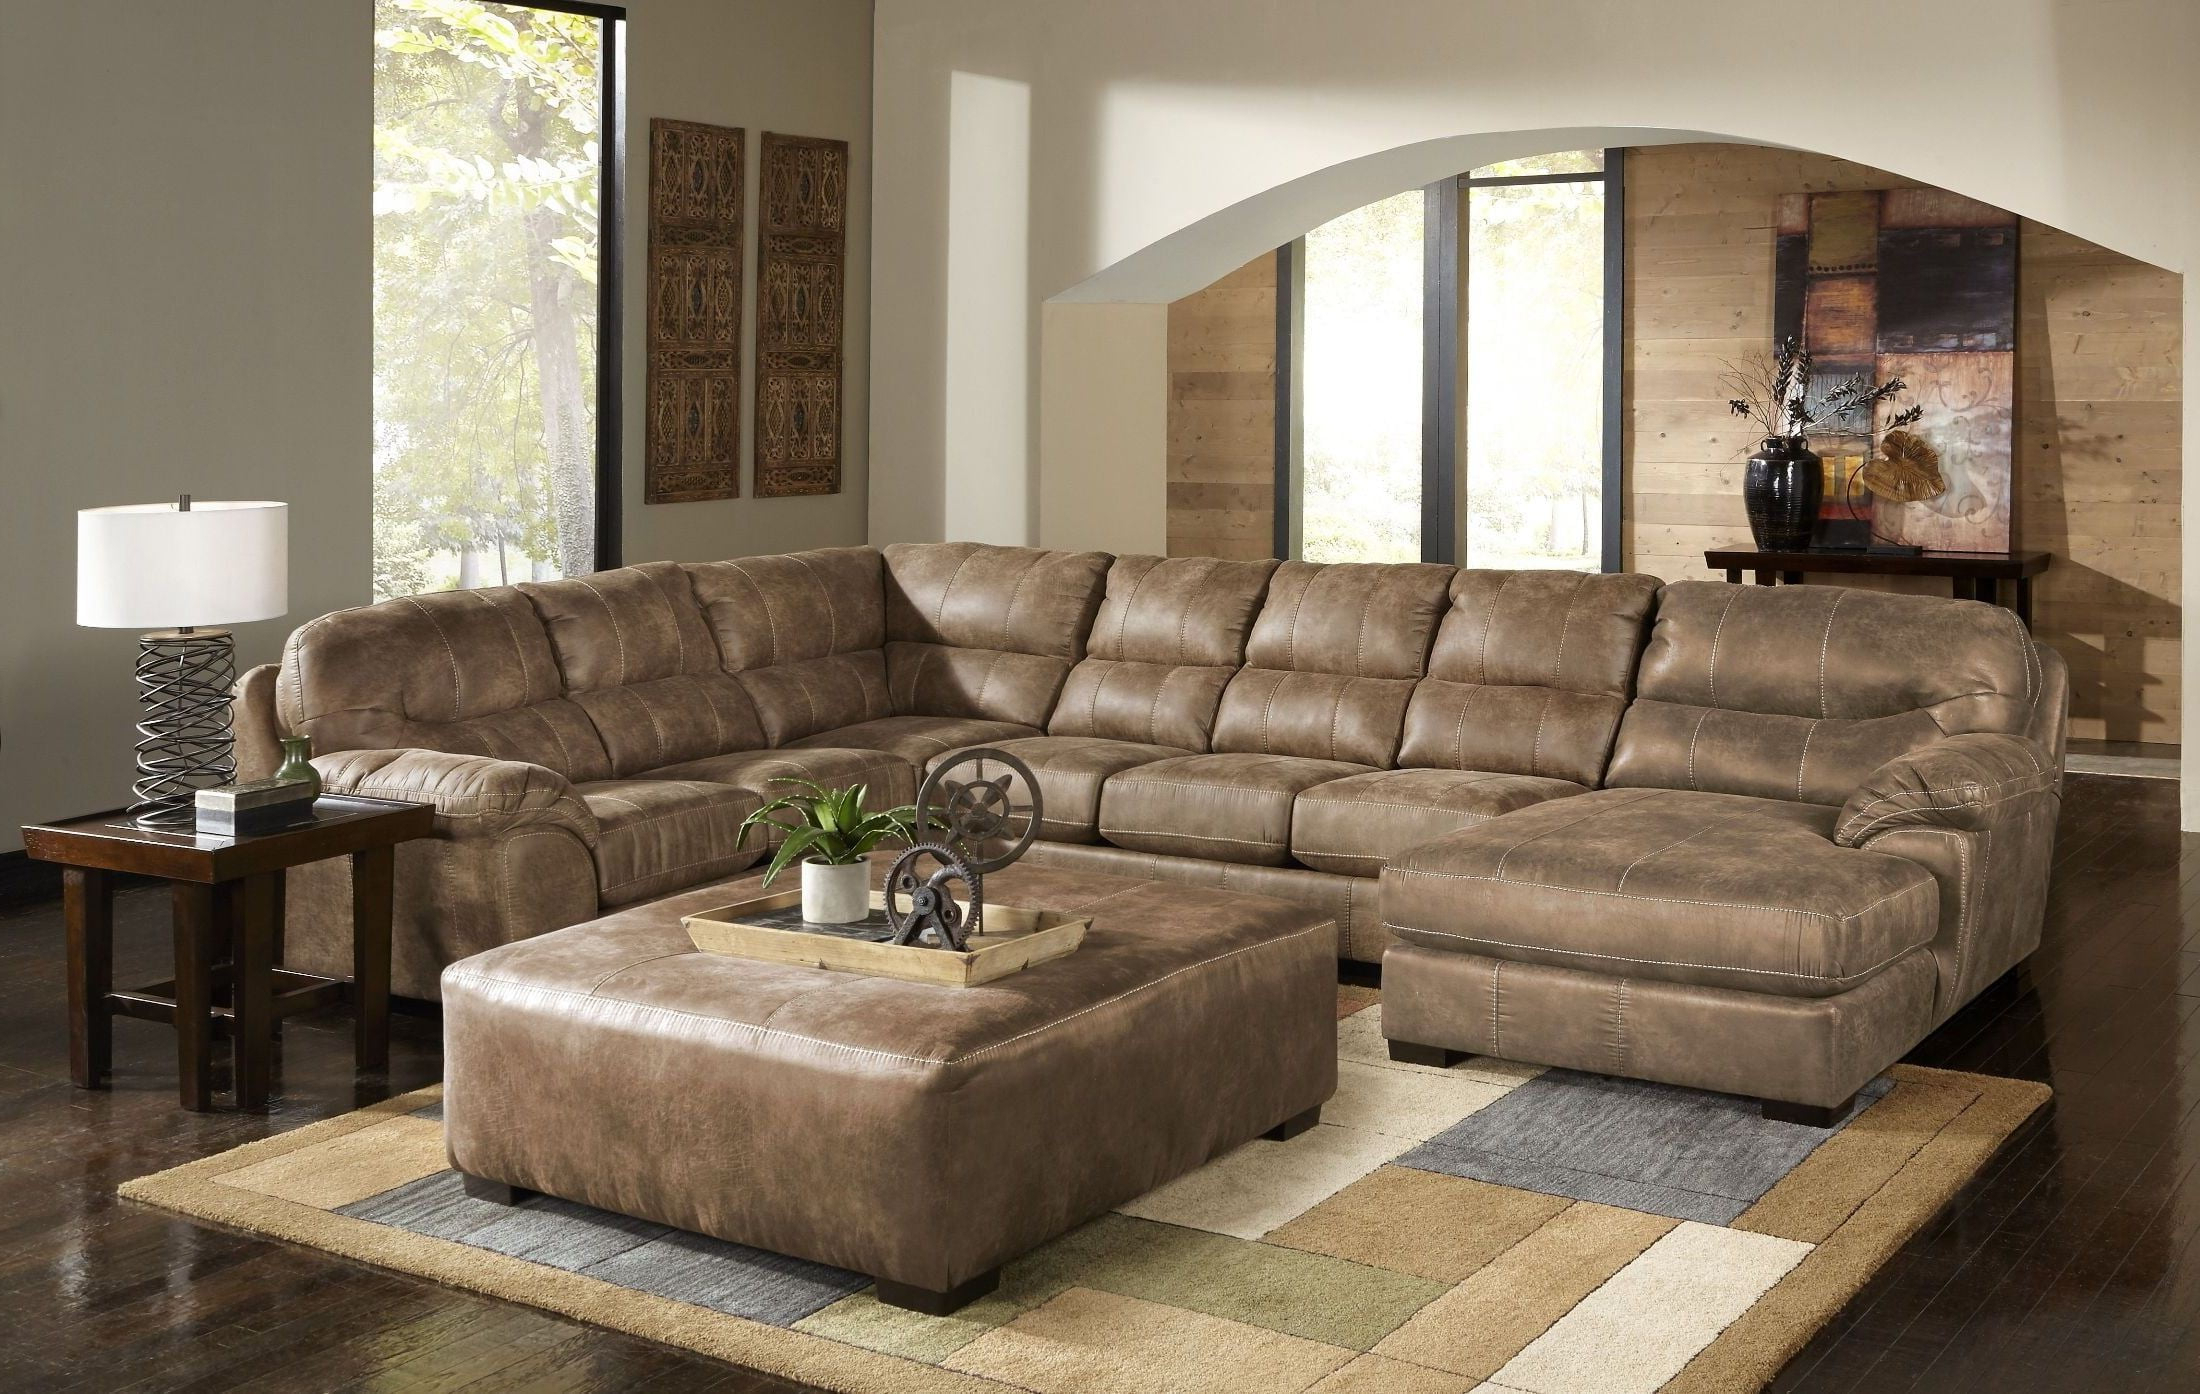 Avery 2 Piece Sectionals With Raf Armless Chaise Intended For Most Recent Grant Silt Laf Chaise Sectional, 4453 75 122749302749, Jackson (Gallery 12 of 20)